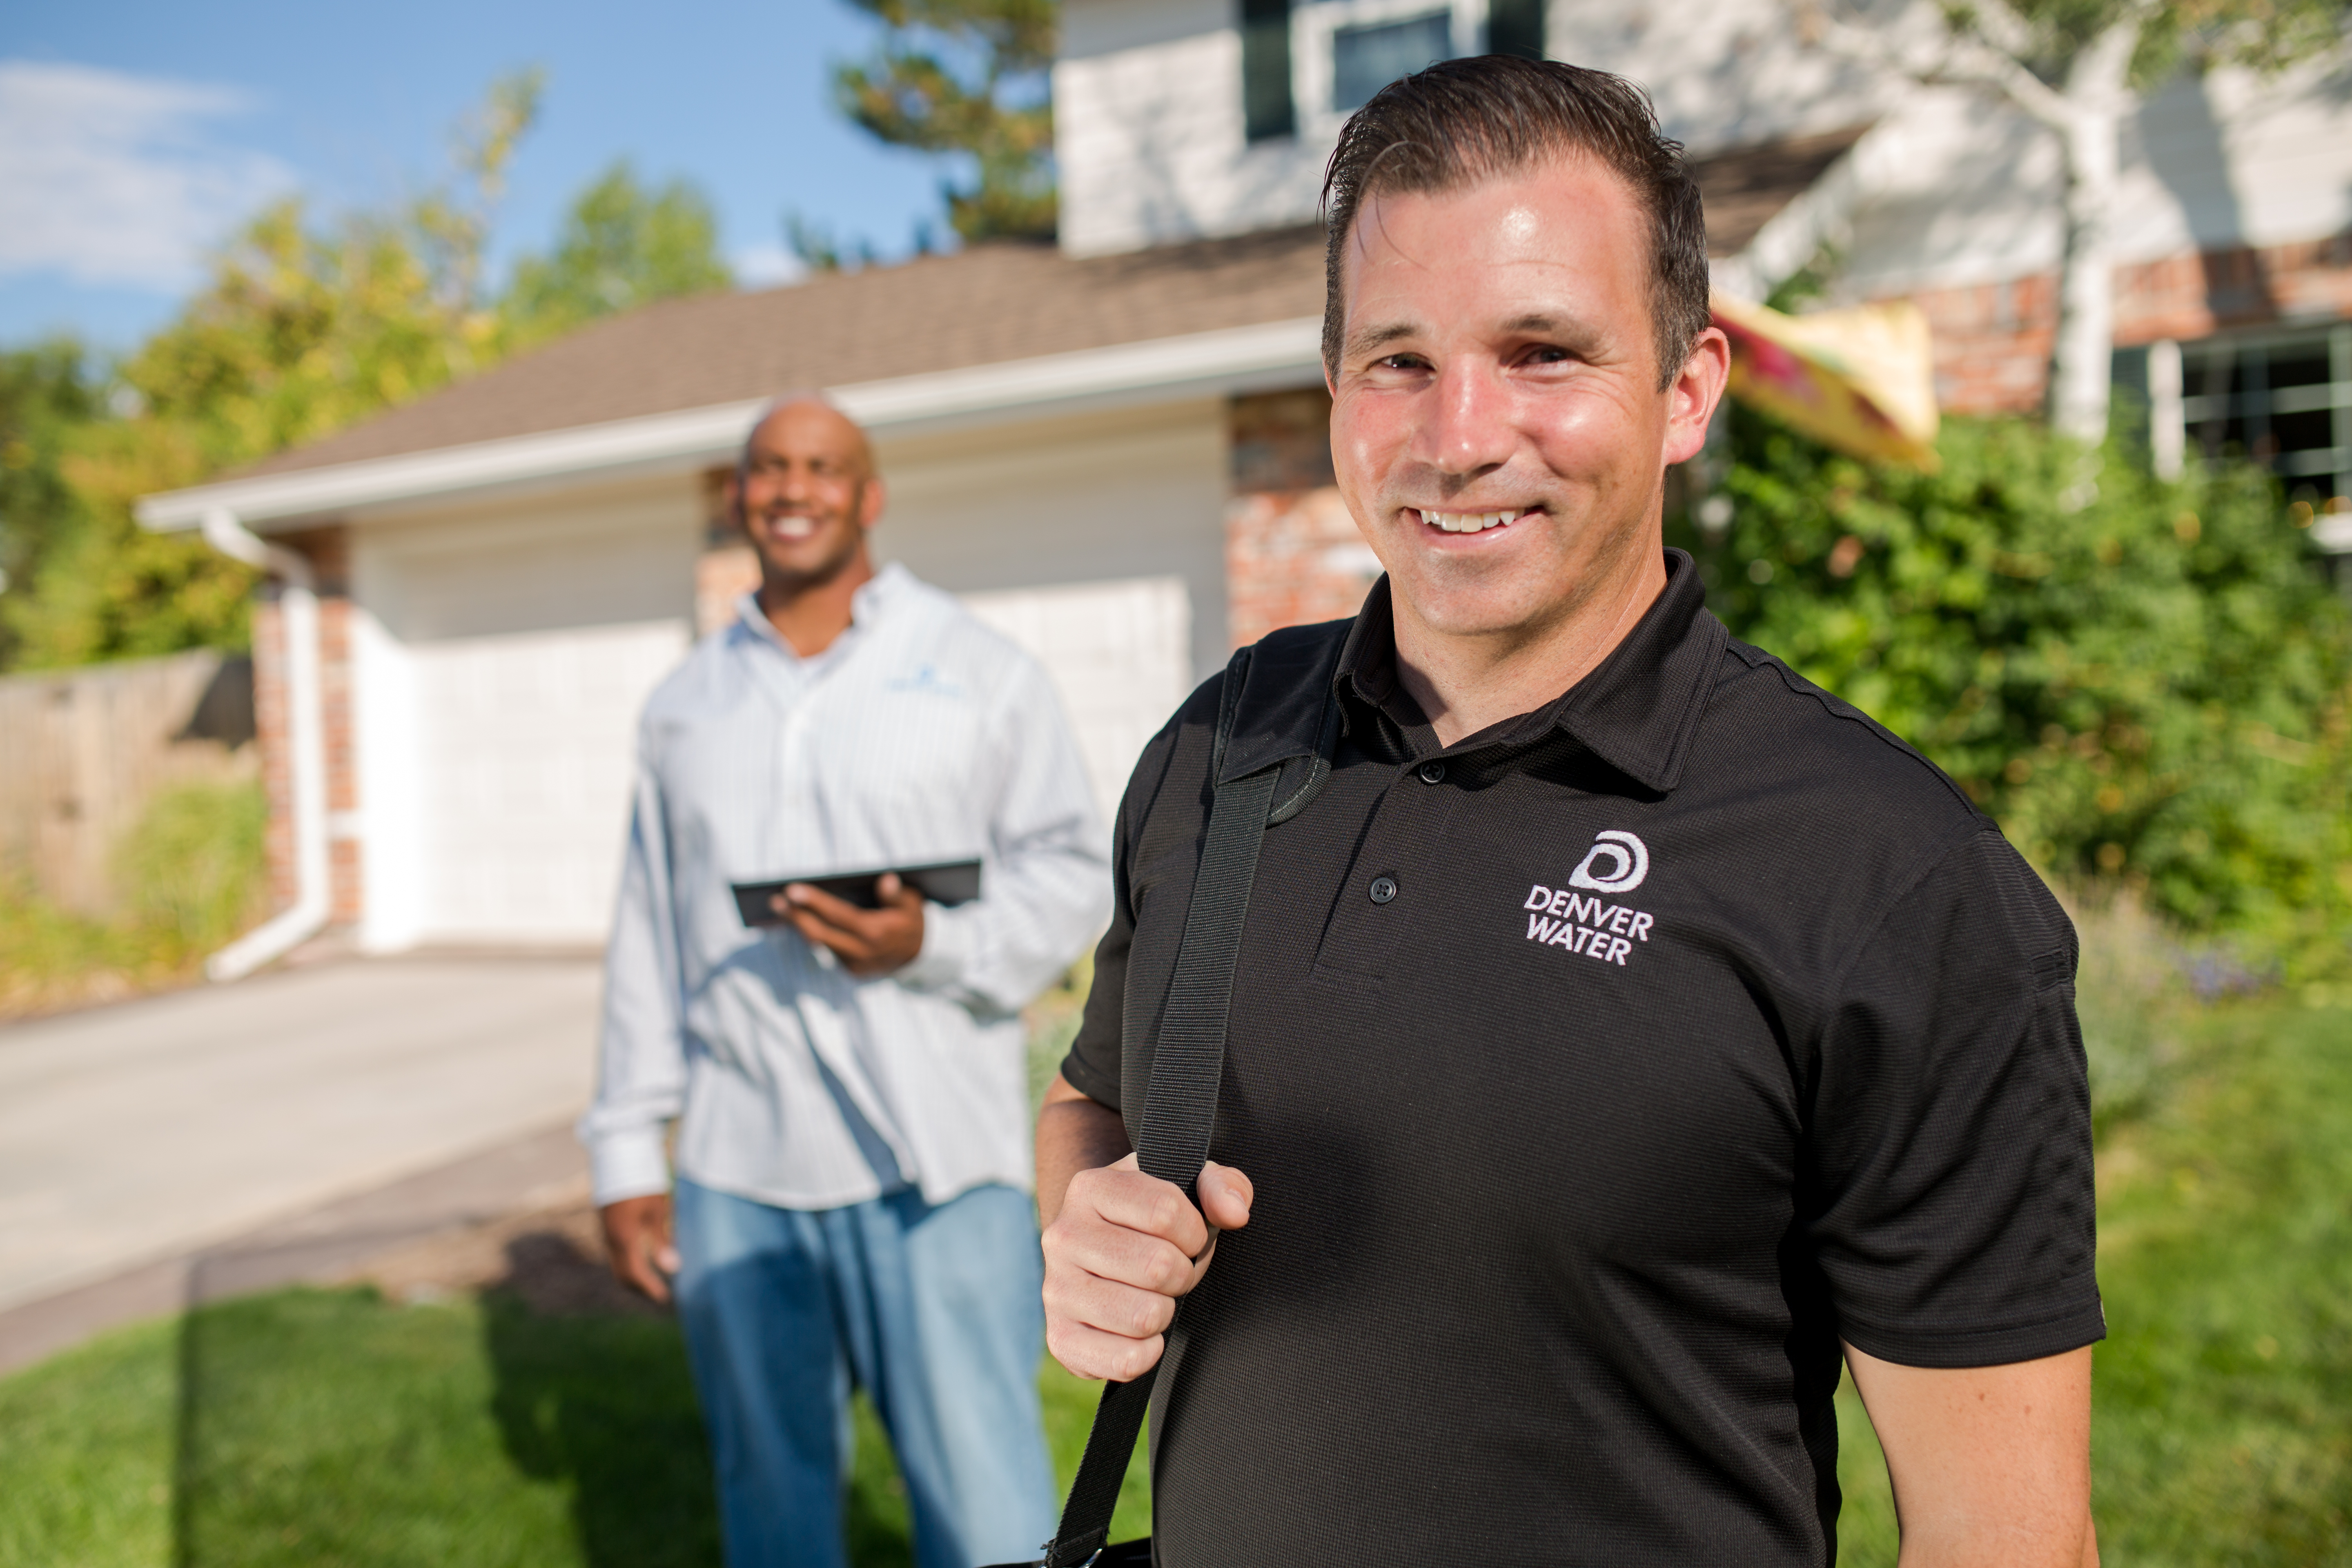 Two men with Denver Water shirts stand in front of a home, smiling for the camera.